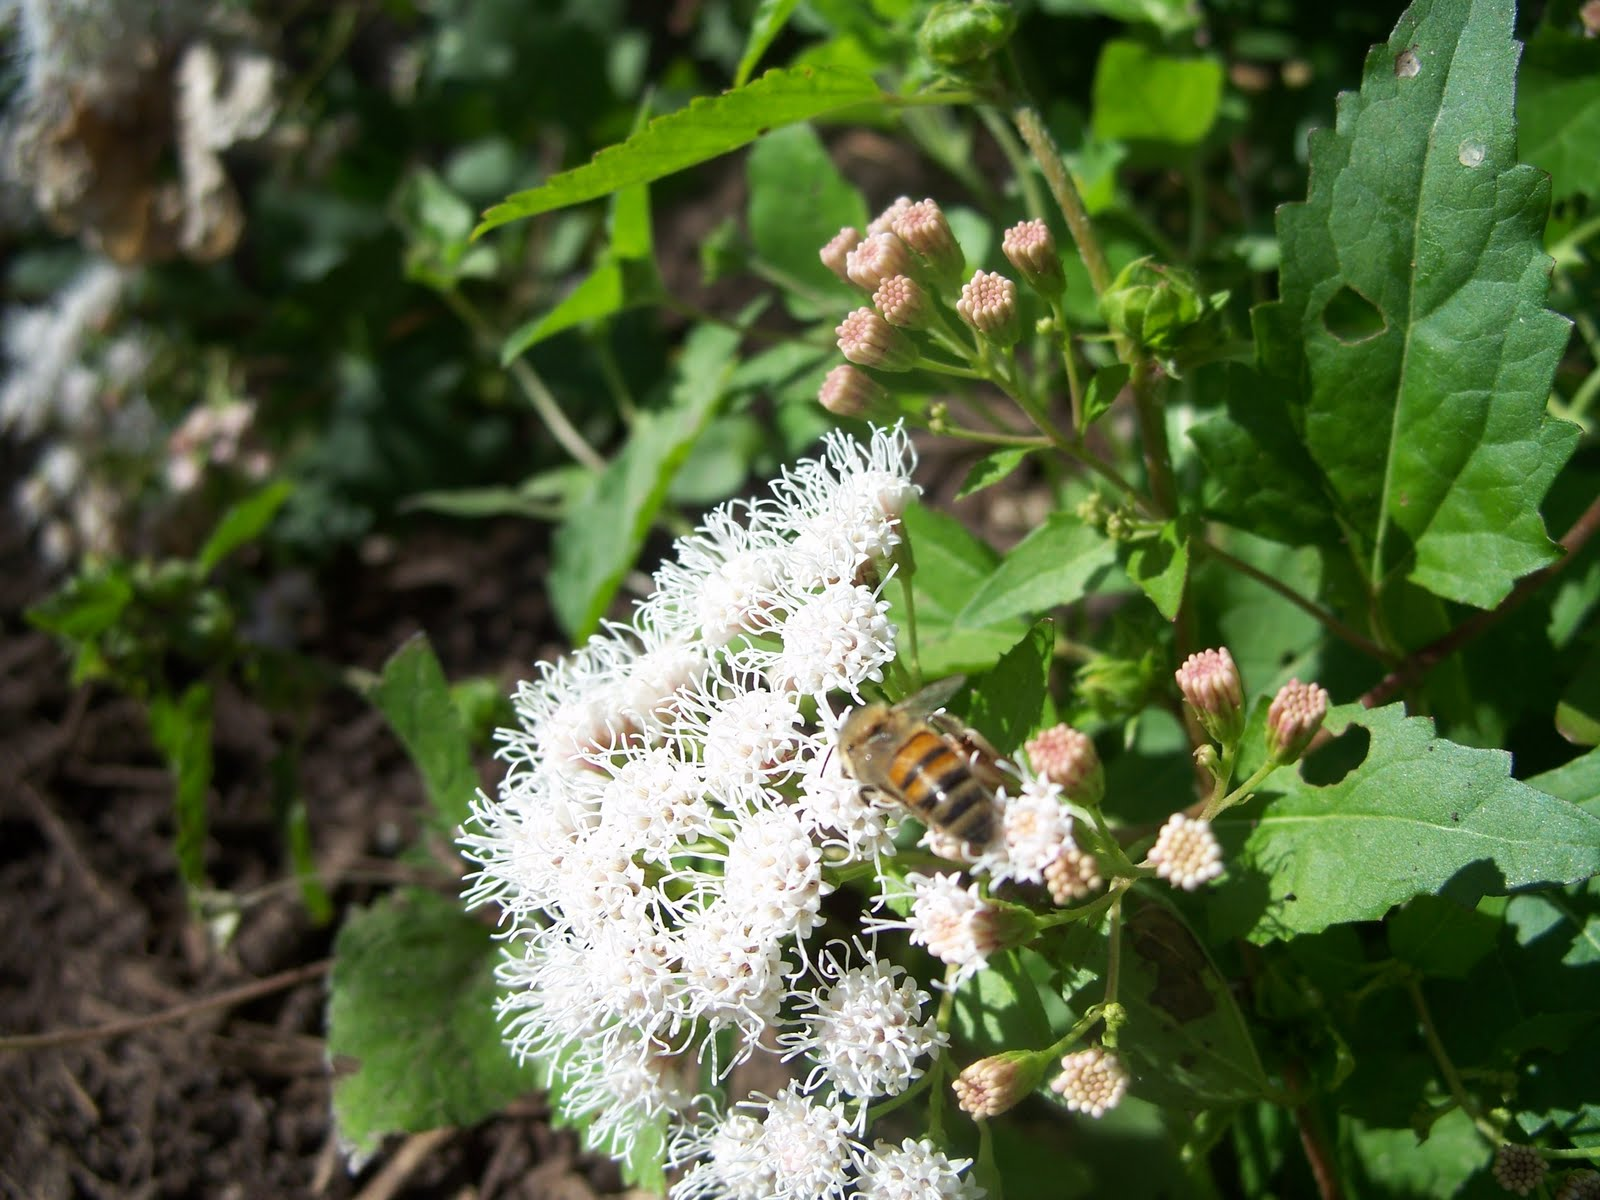 Garden gnomes texas gardening blog plants that rule white mistflower they just waited until it finally rained and then exploded into bloom oh and as you might expect it smells great rich perfumey and sweet mightylinksfo